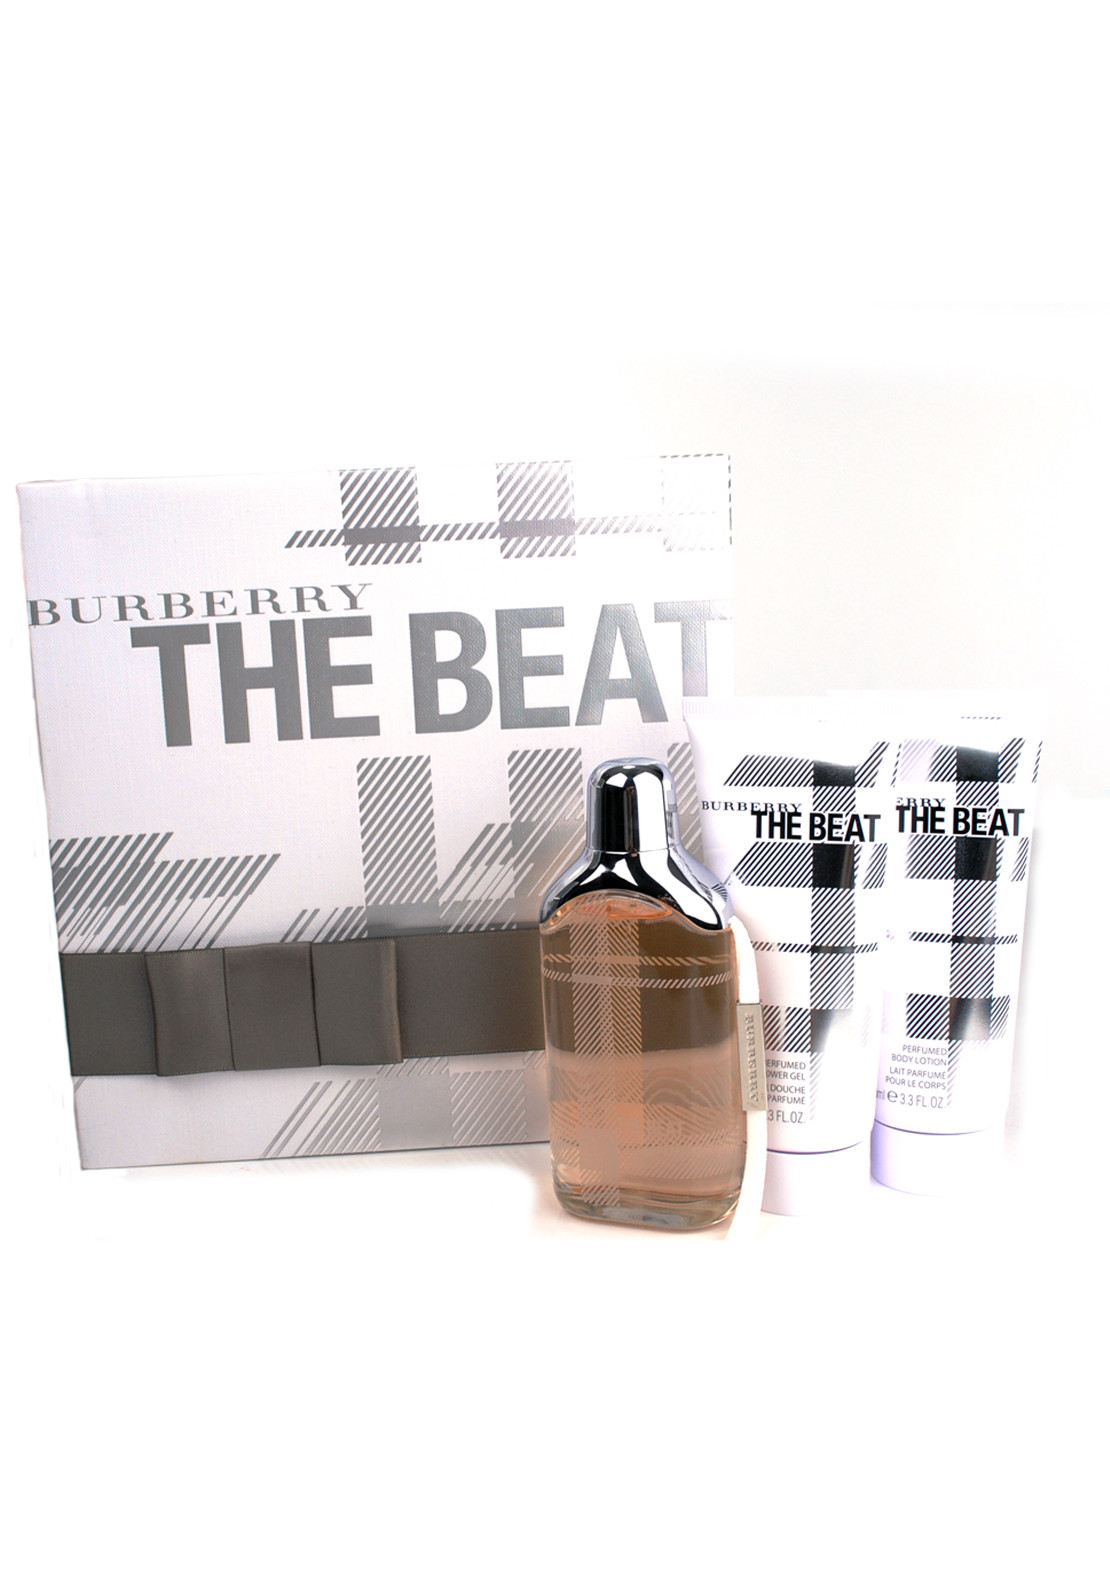 Burberry The Beat Eau De Parfum Gift Set for Women, 75ml